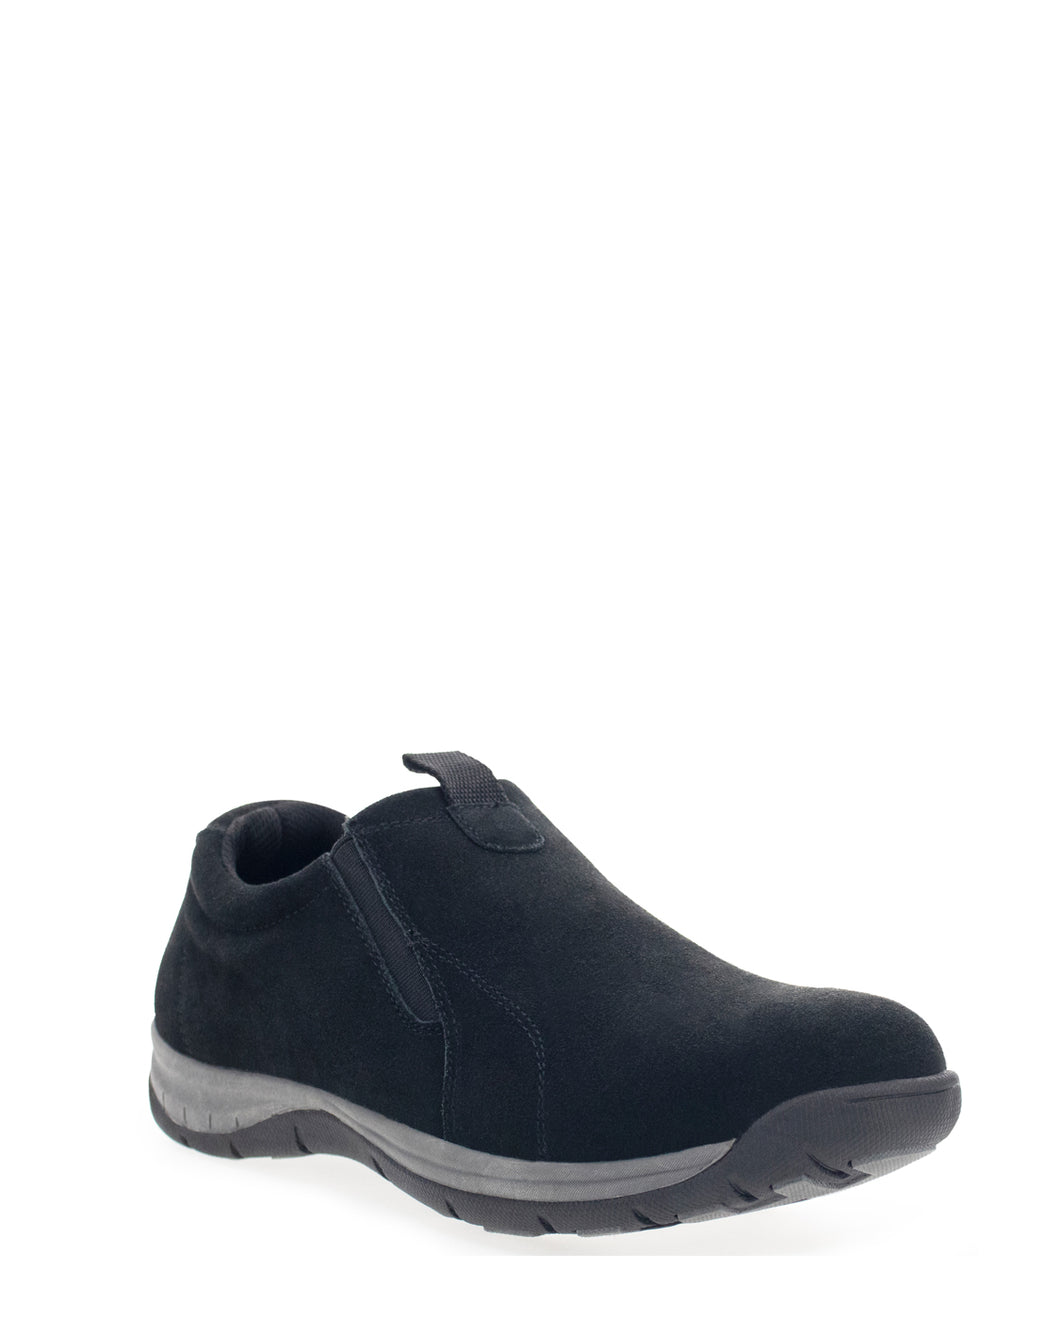 Men's Weston Step-In Shoe - Black